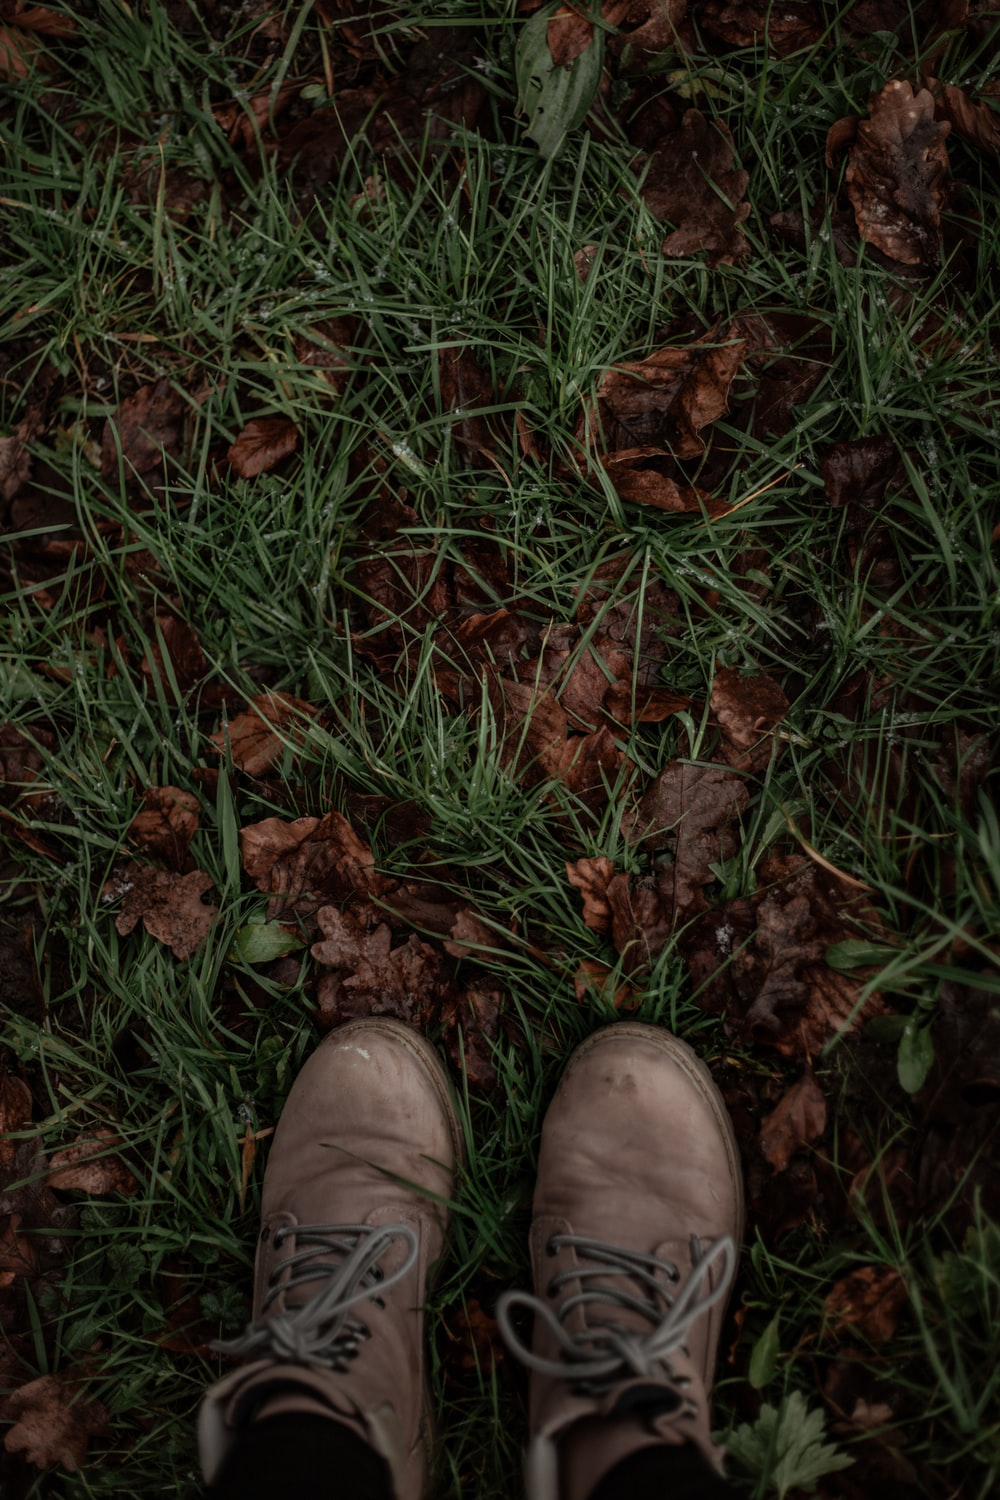 person wearing brown leather shoes standing on brown dried leaves